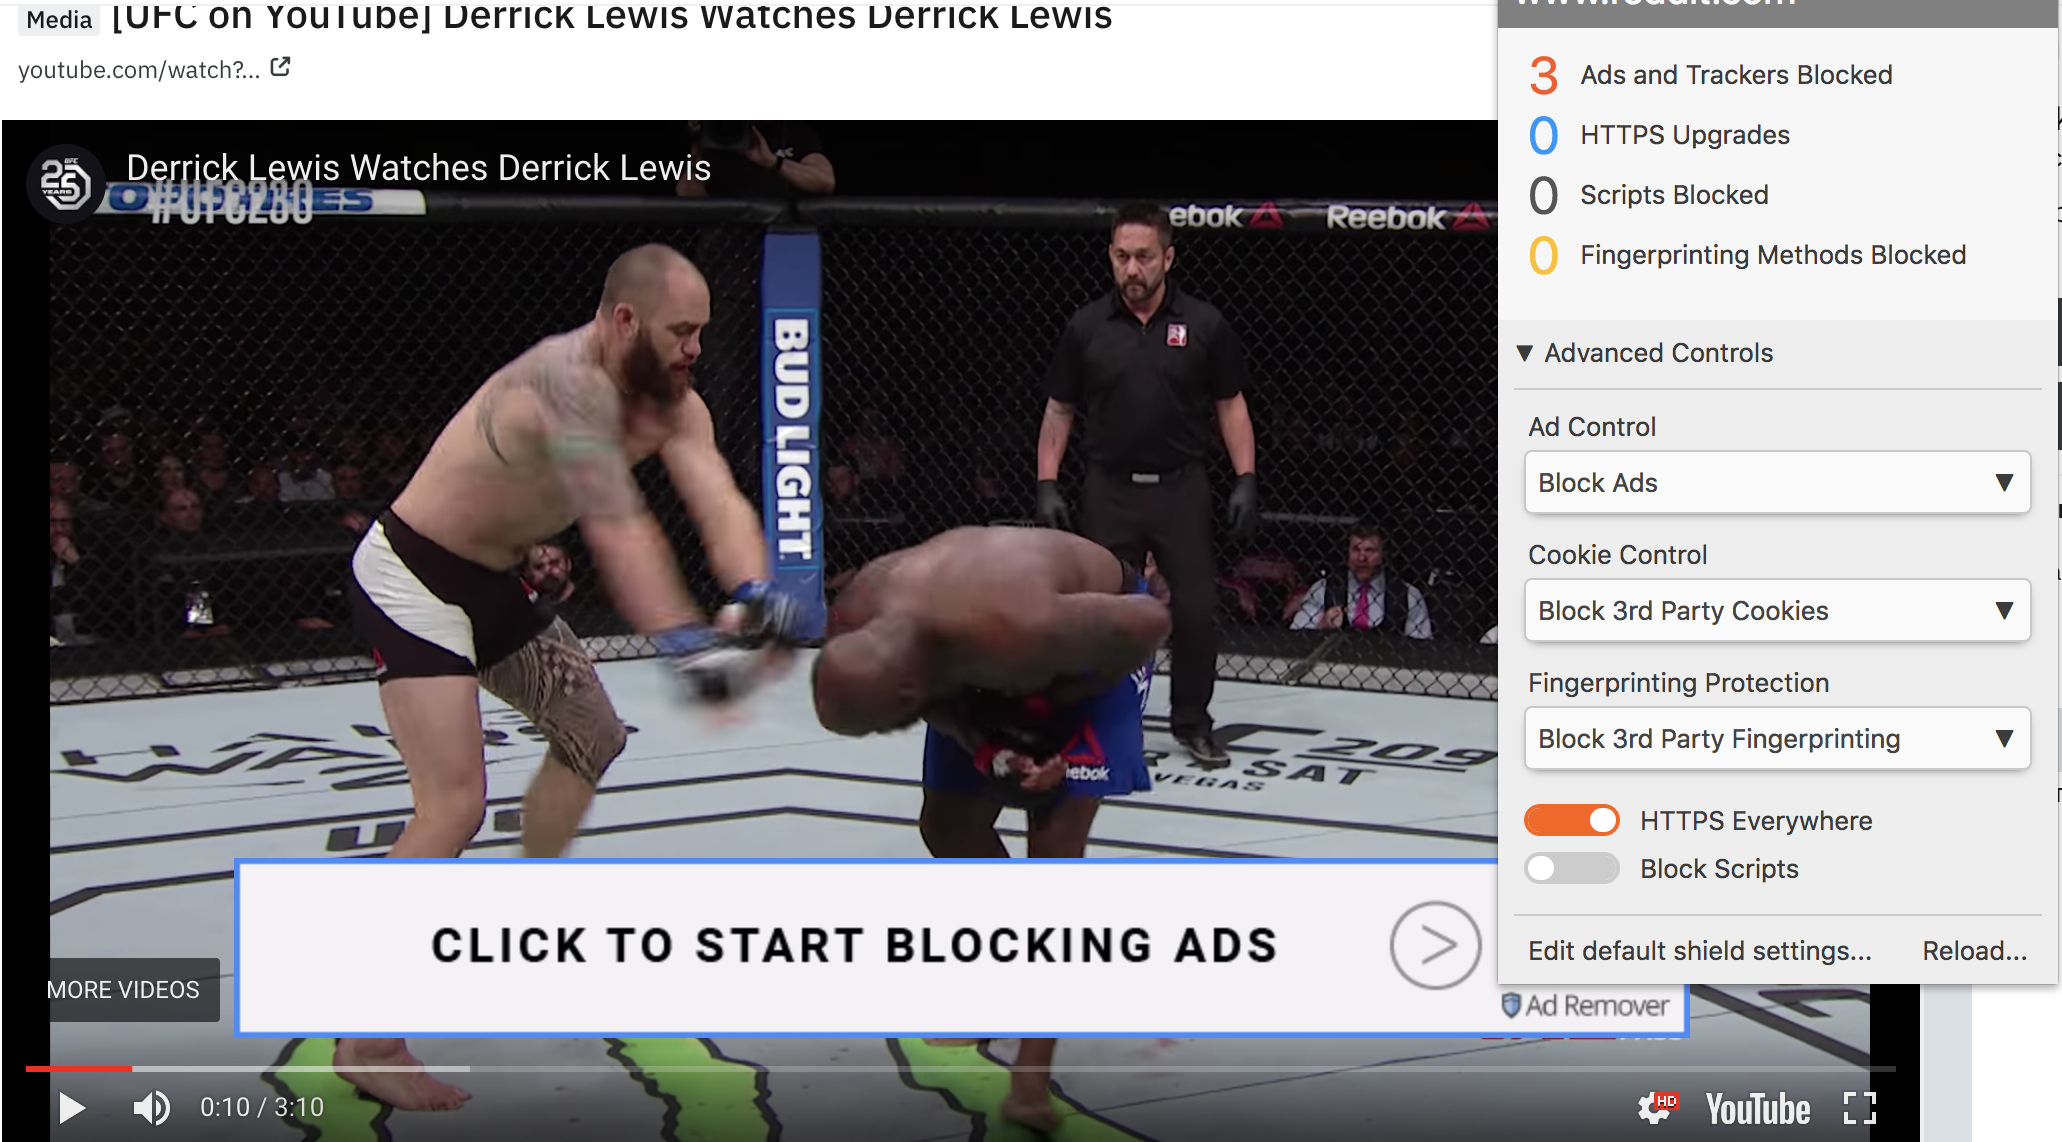 Ads on YouTube (pre-roll and banner overlays) not blocked